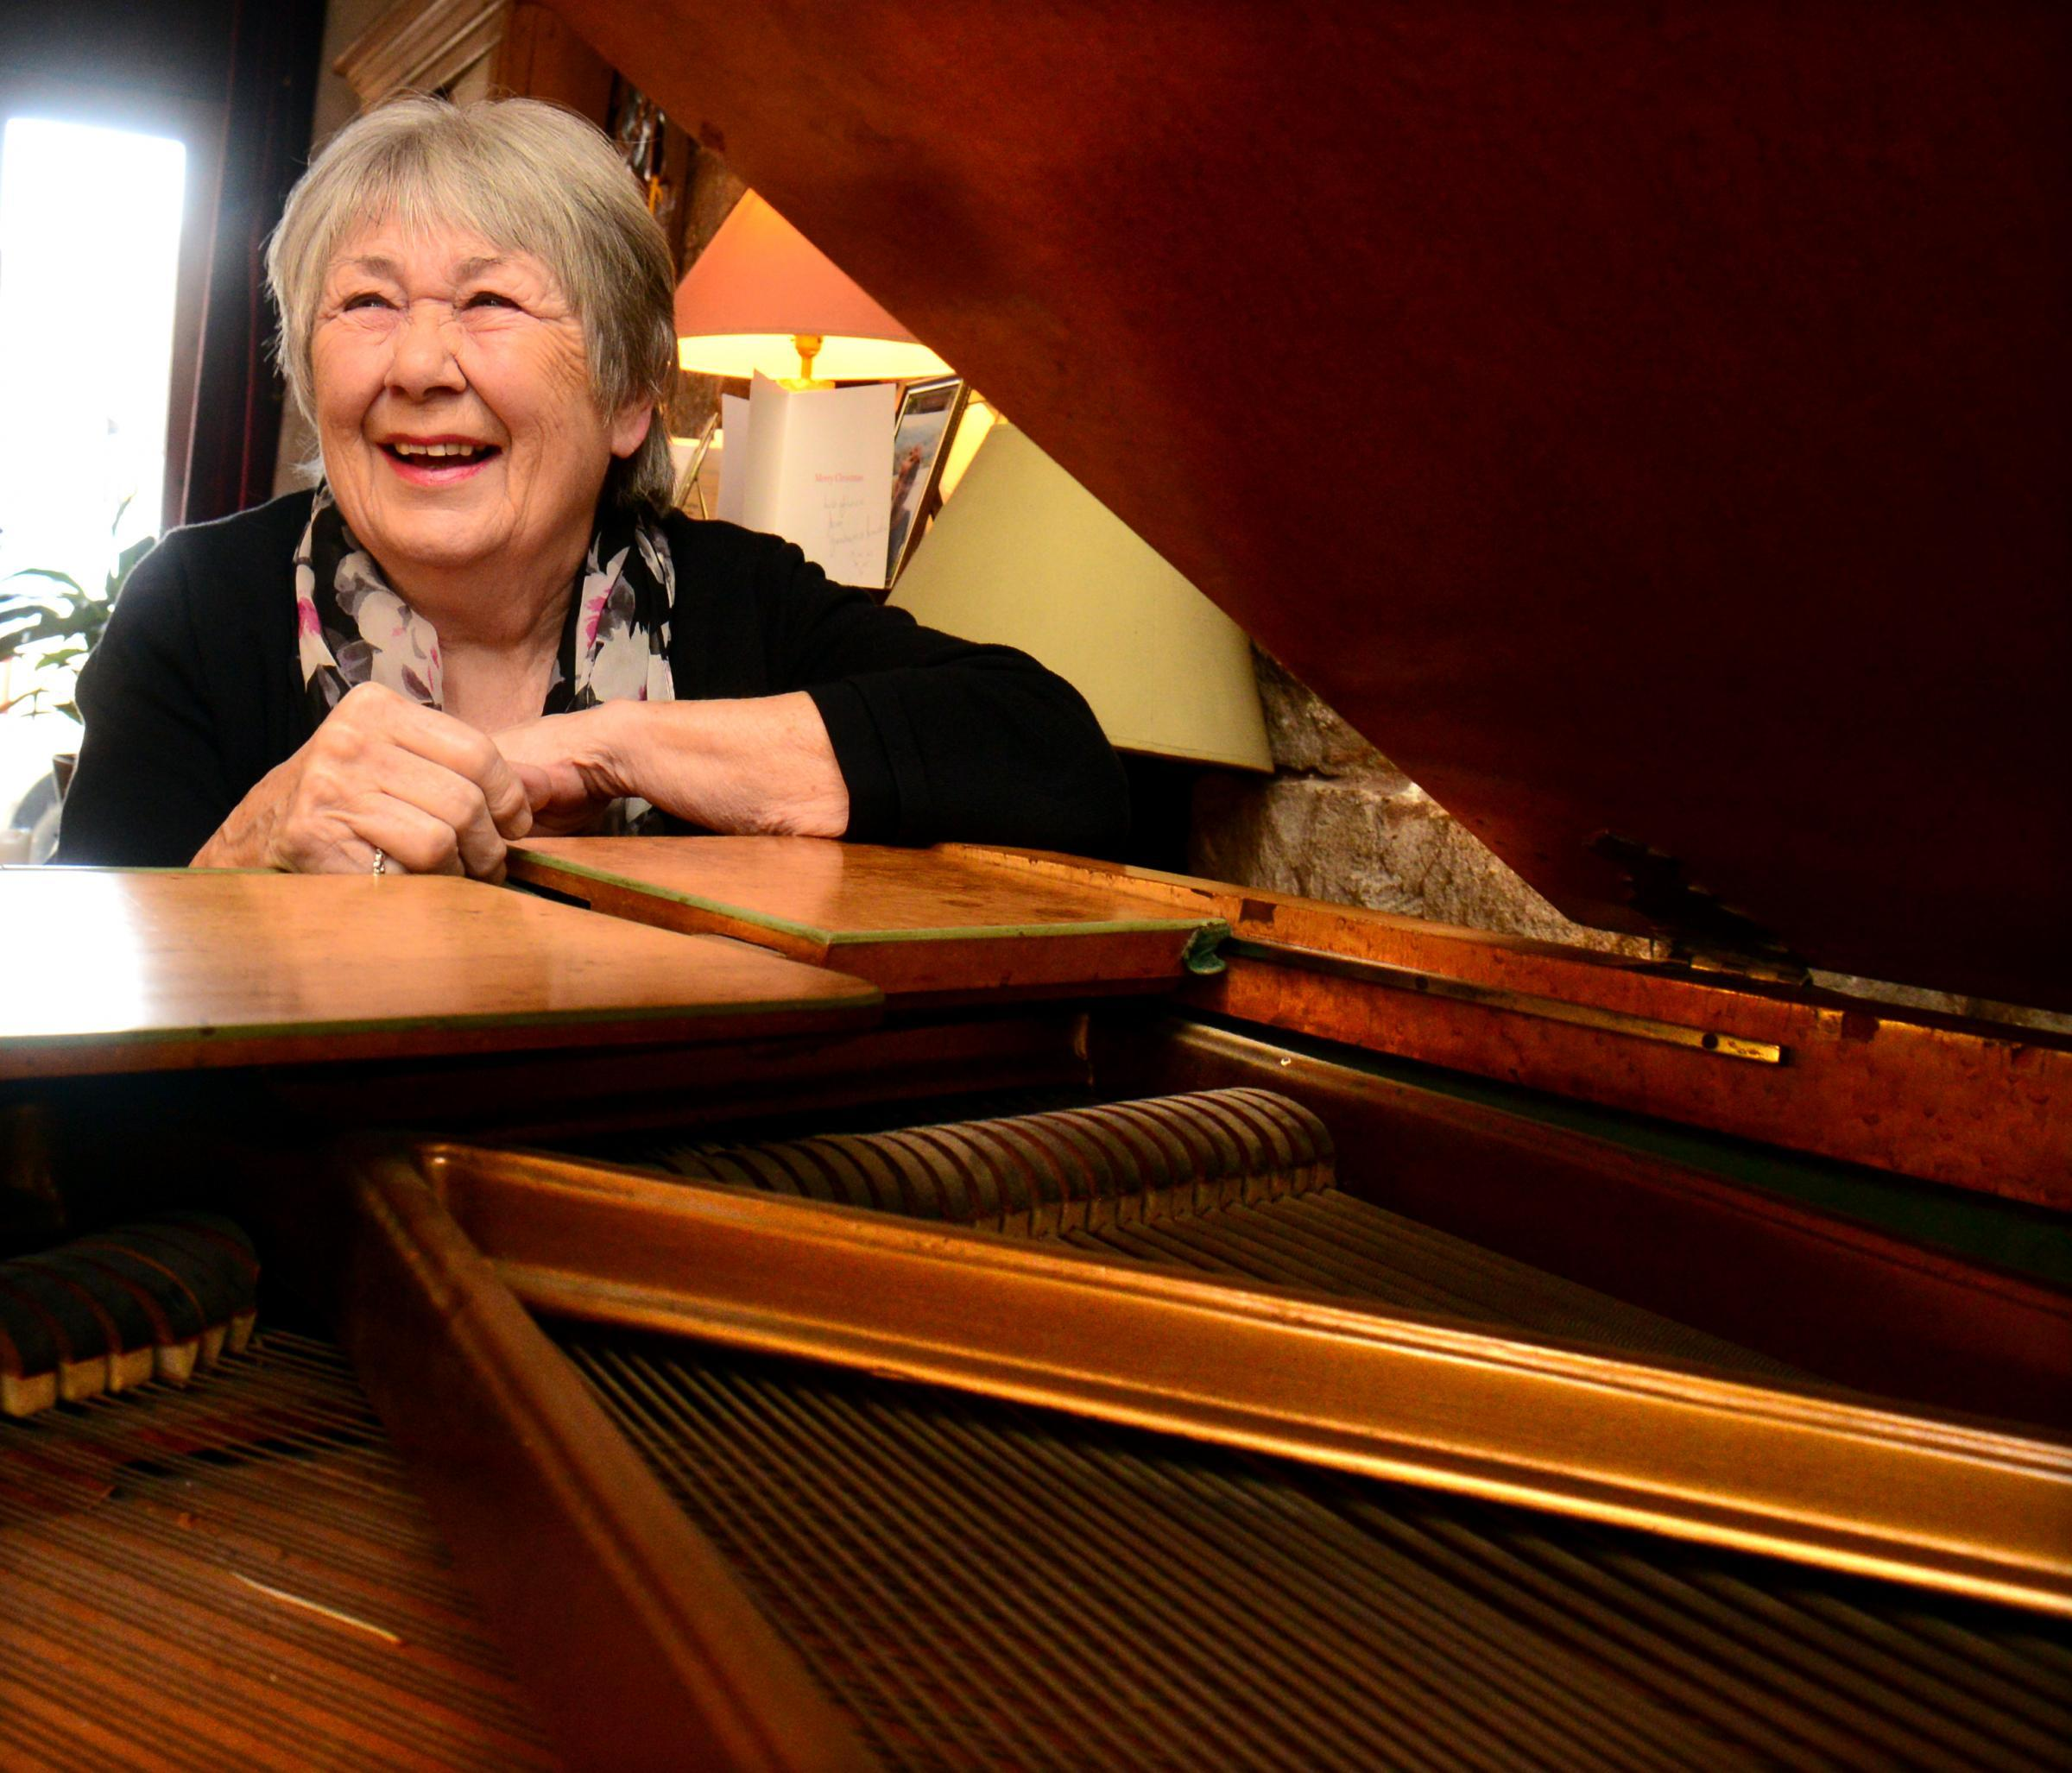 Legendary music teacher and former member of the well-known Trio Vignette ensemble, pianist Joyce Humber (pictured) will be tinkling the ivories during her popular Christmas Eve gathering at the Brewery Arts Centre